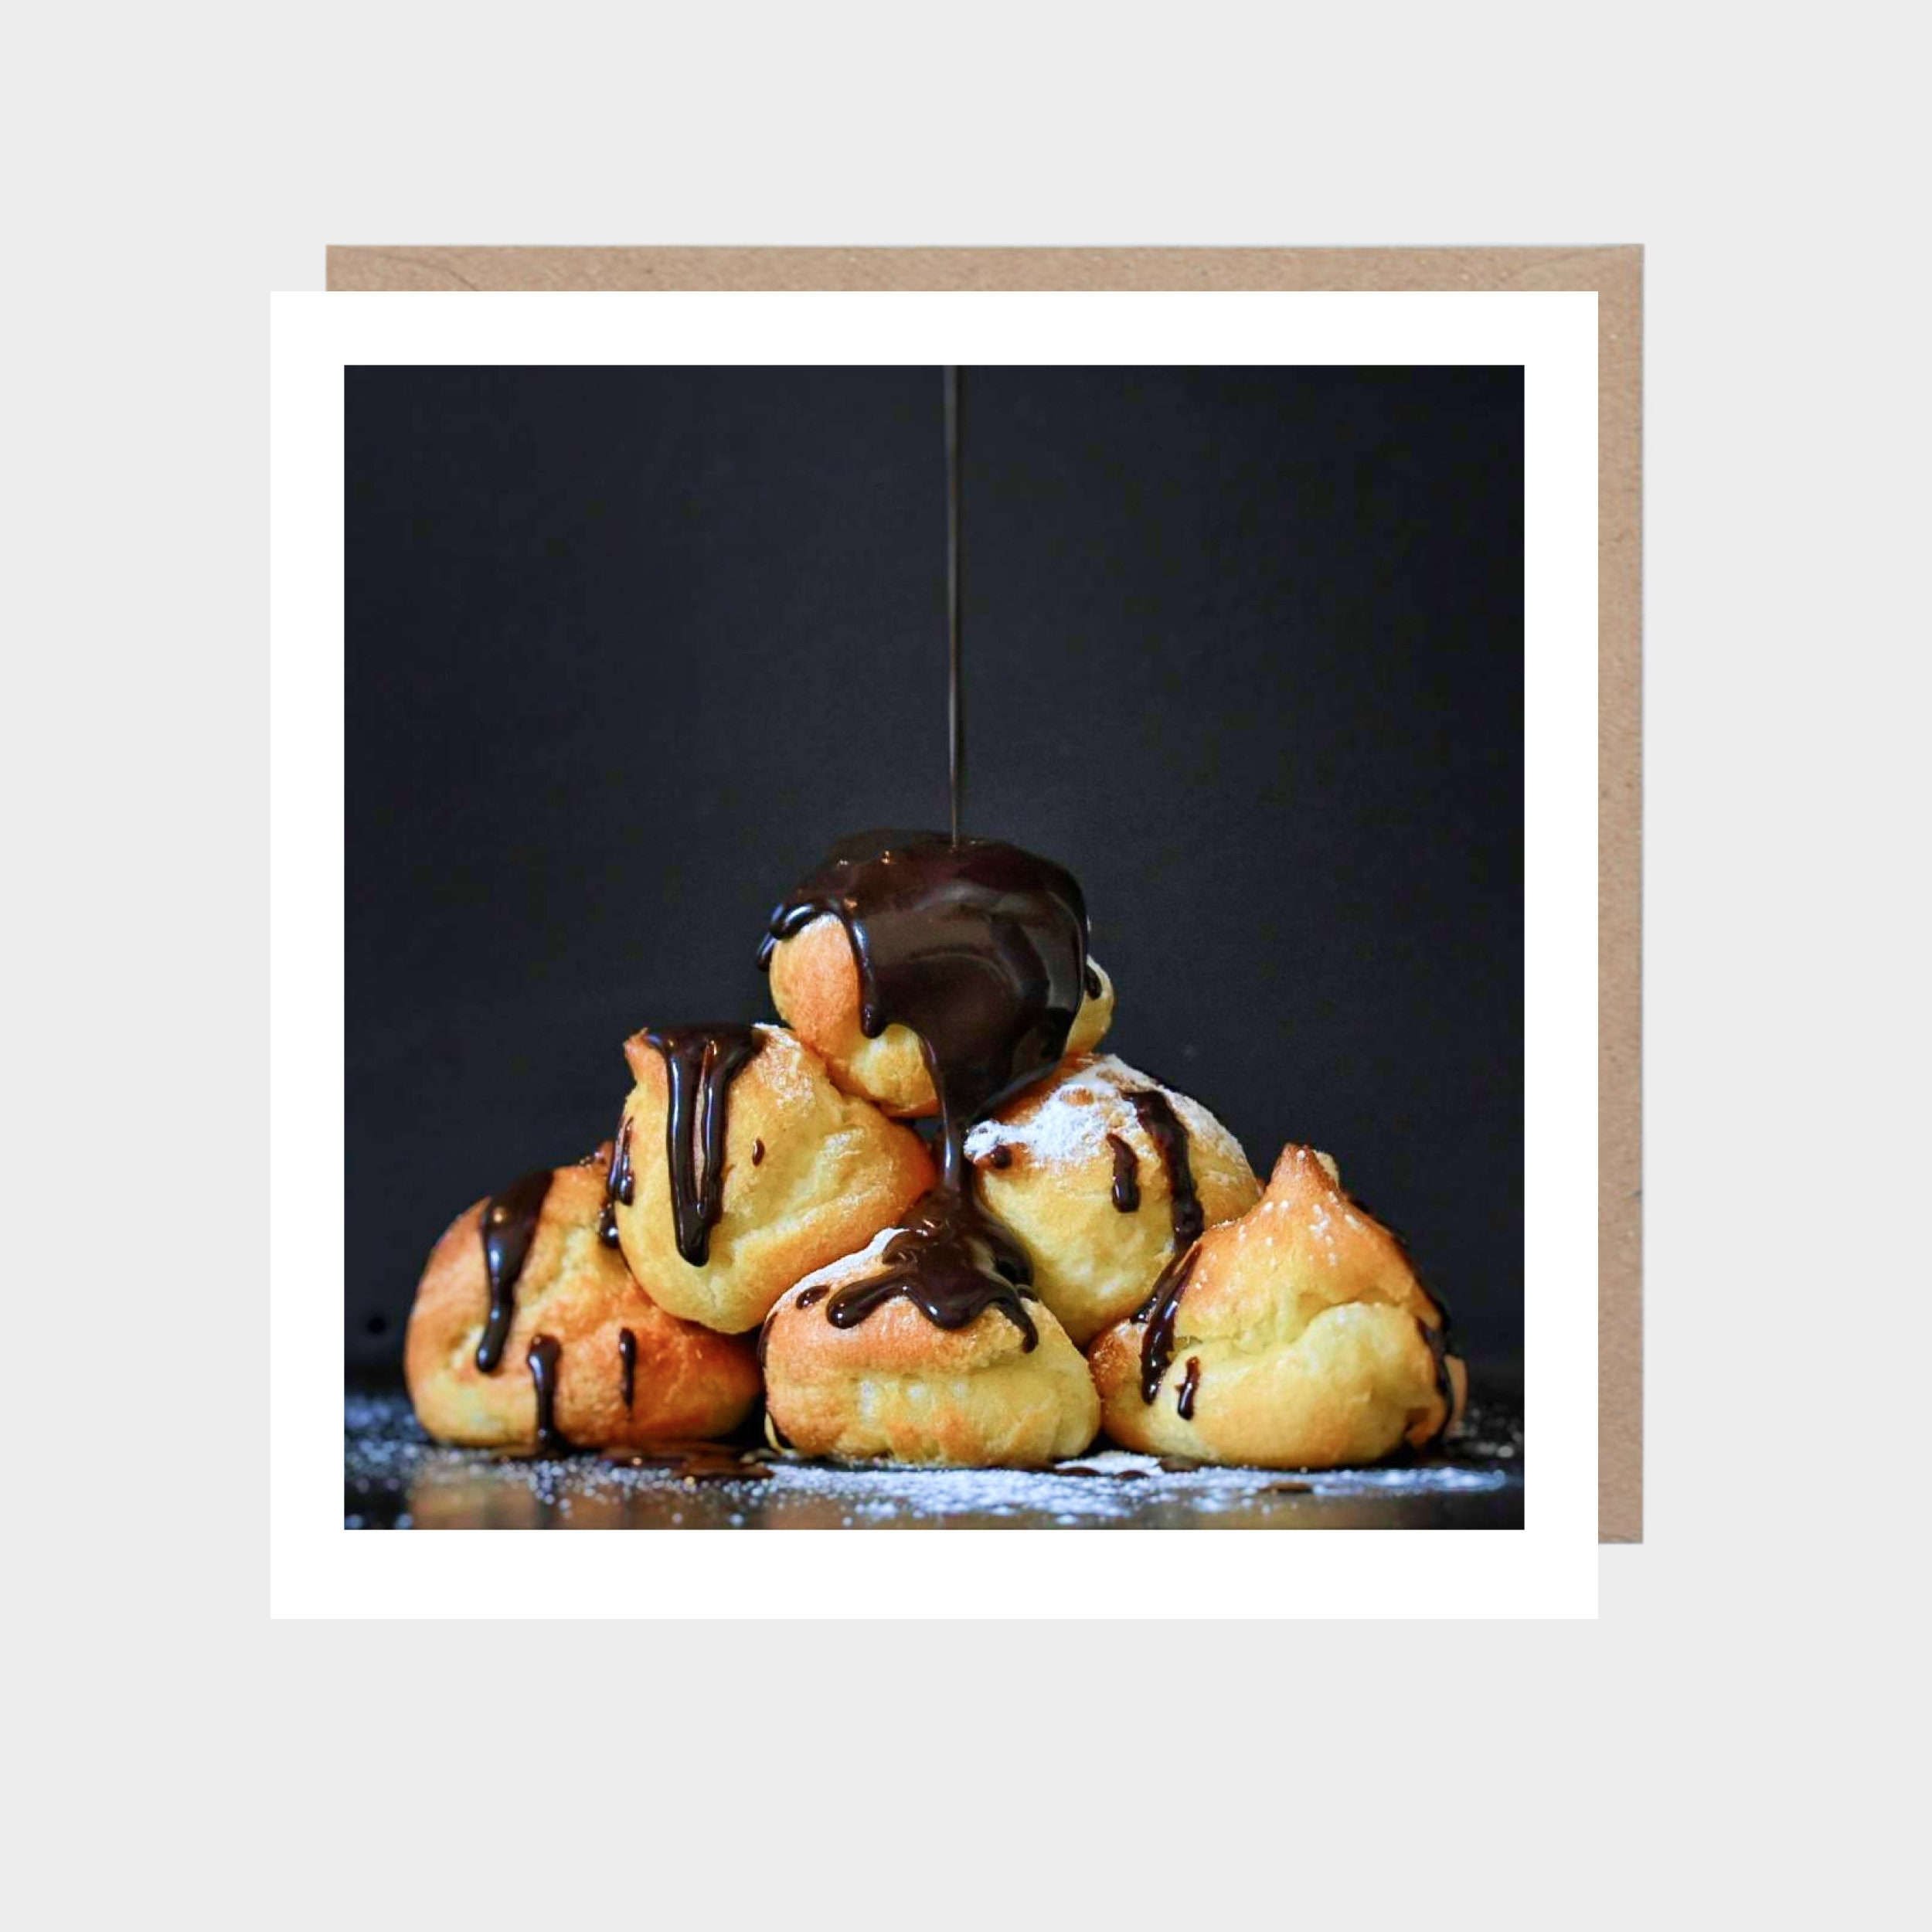 Square card with a close-up photo of profiteroles, with a brown kraft envelope